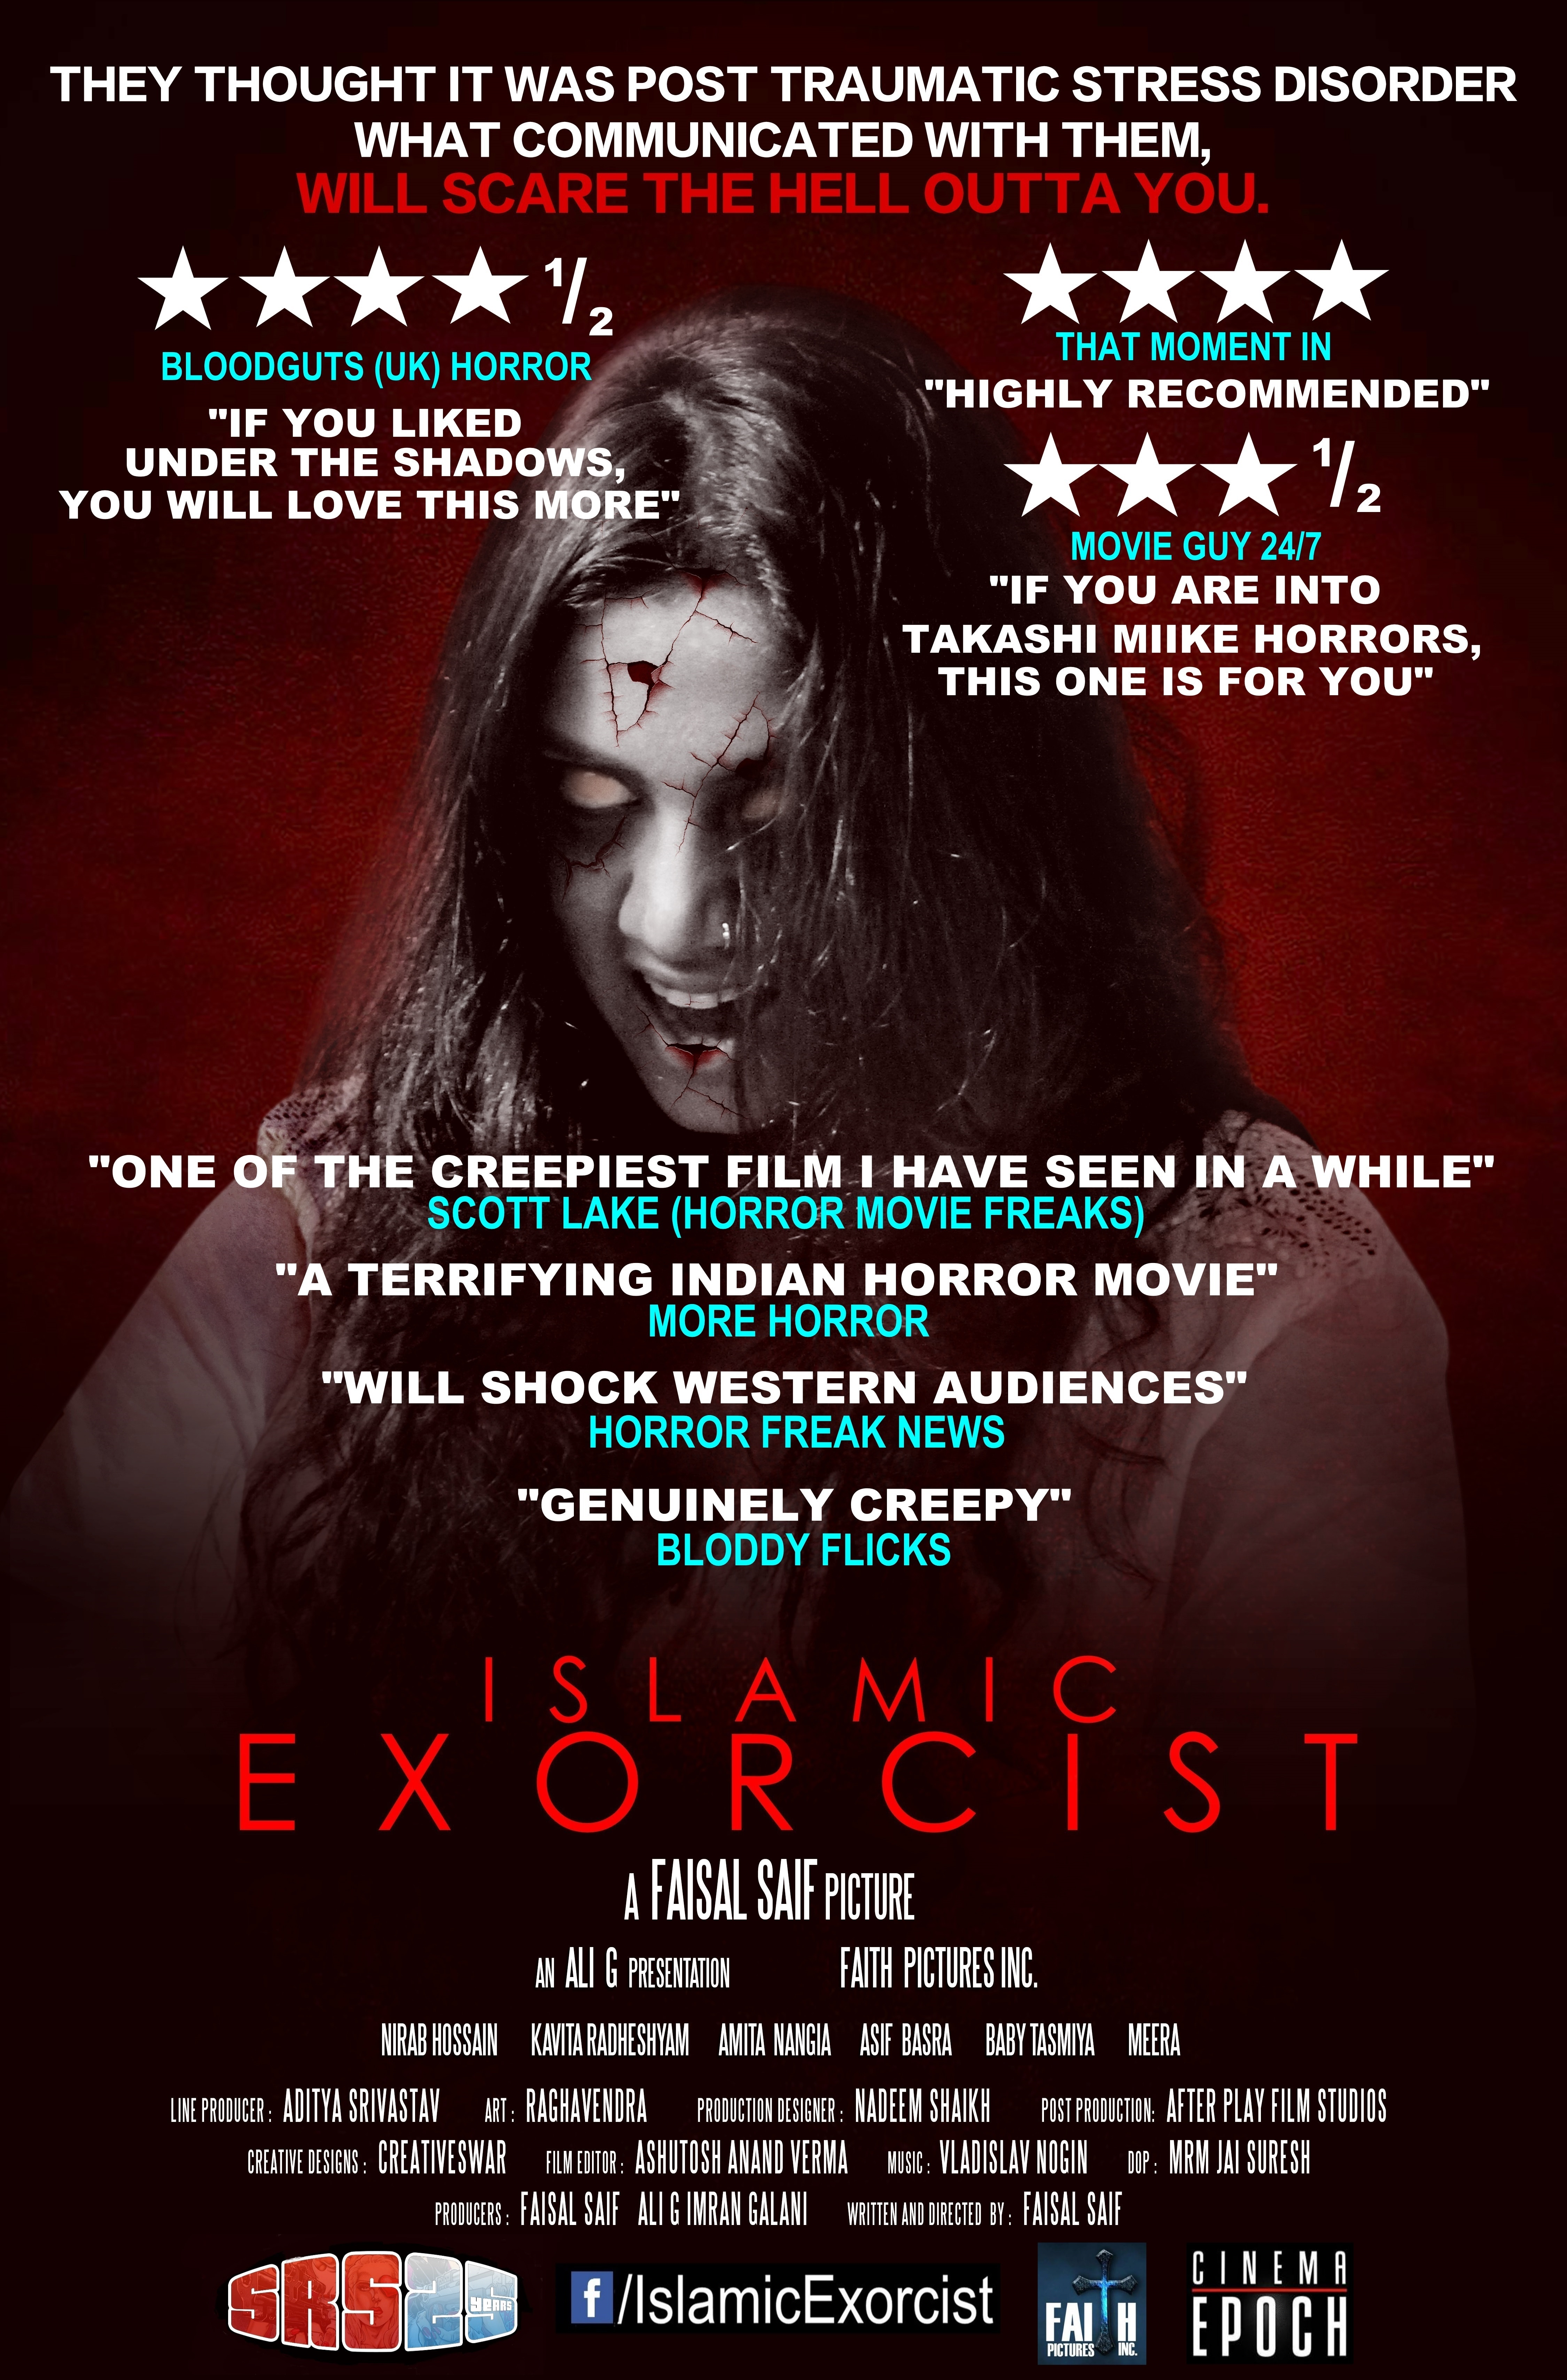 IslanmicExorcist - Islamic Exorcist Gets Trailer and Poster